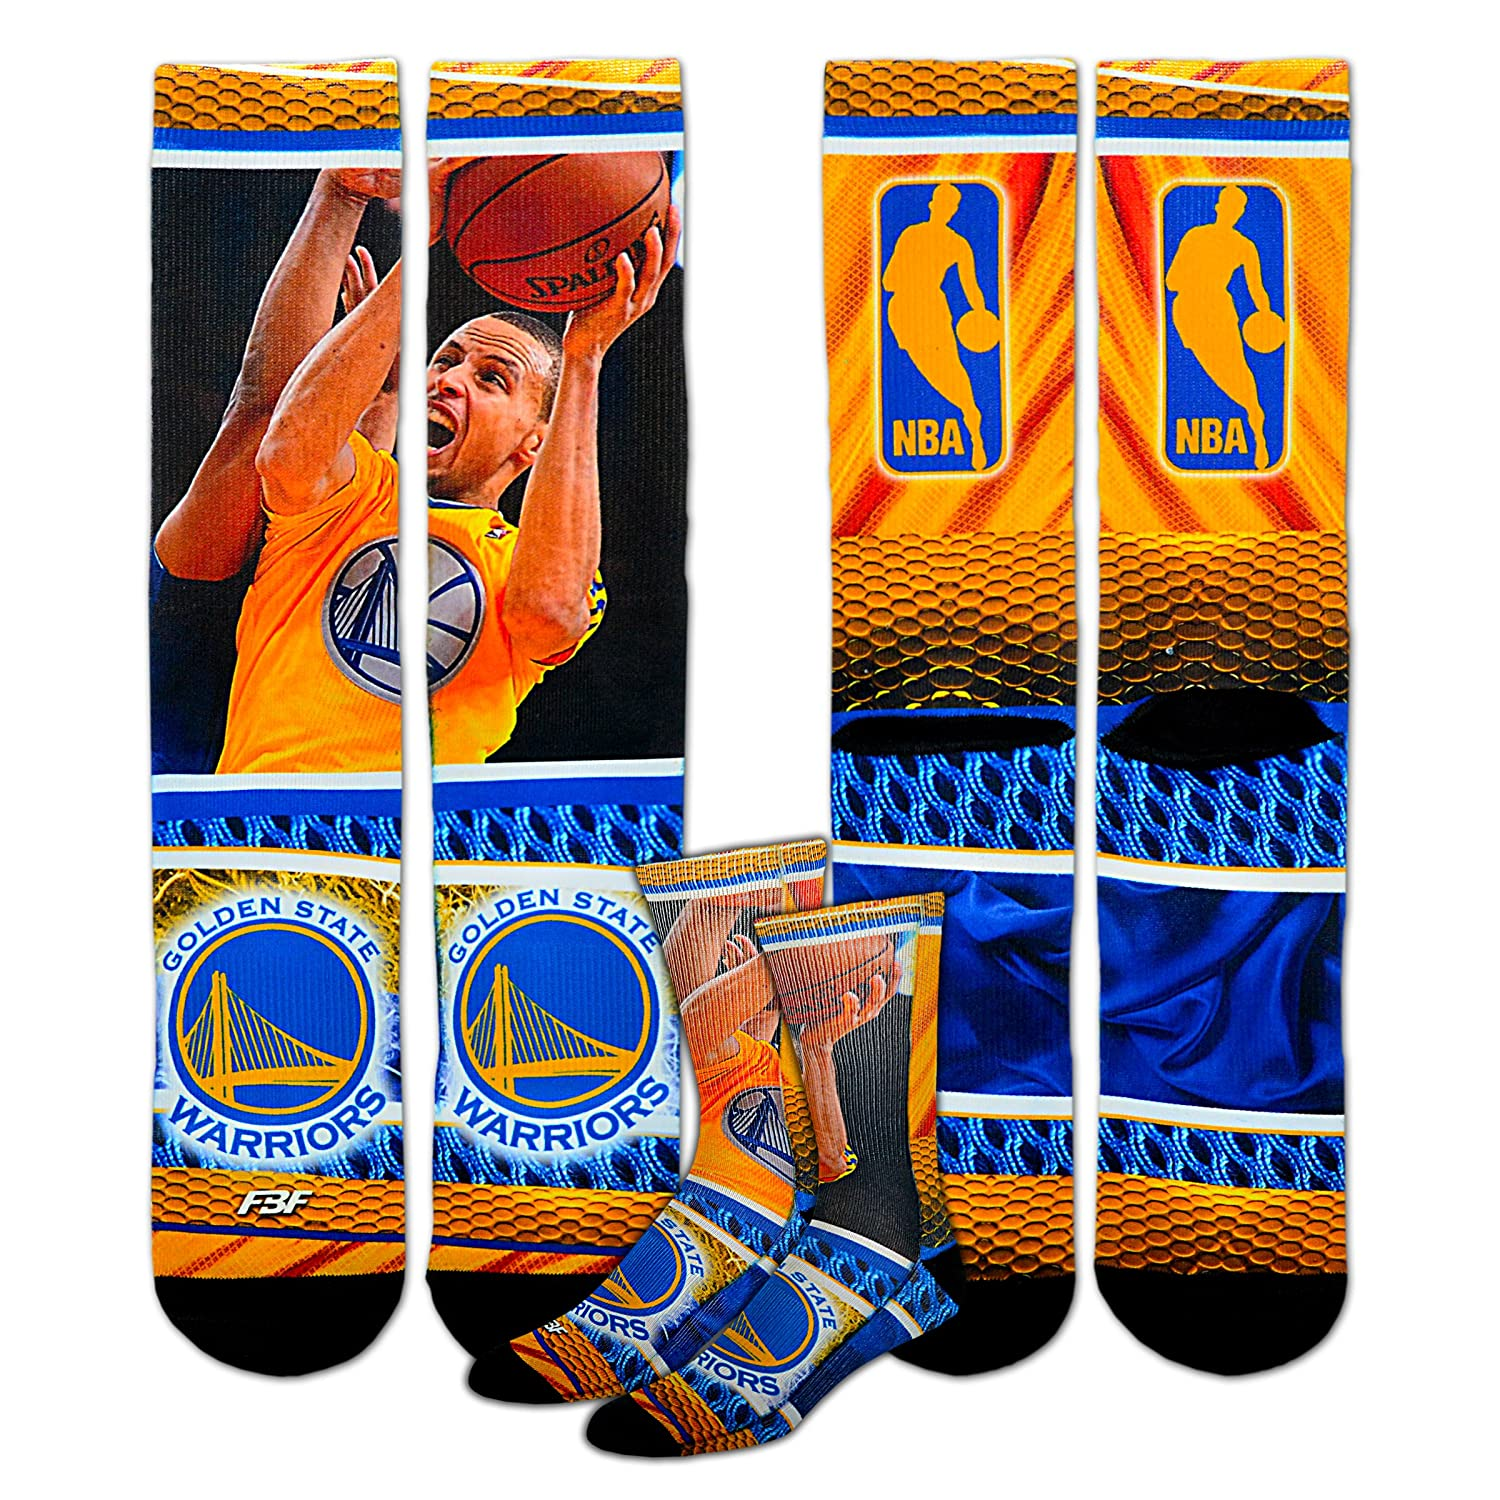 Stephen Curry #30 Golden State Warriors Youth Size NBA Hardplay Kids Socks 1 Pair 4-8 YRS